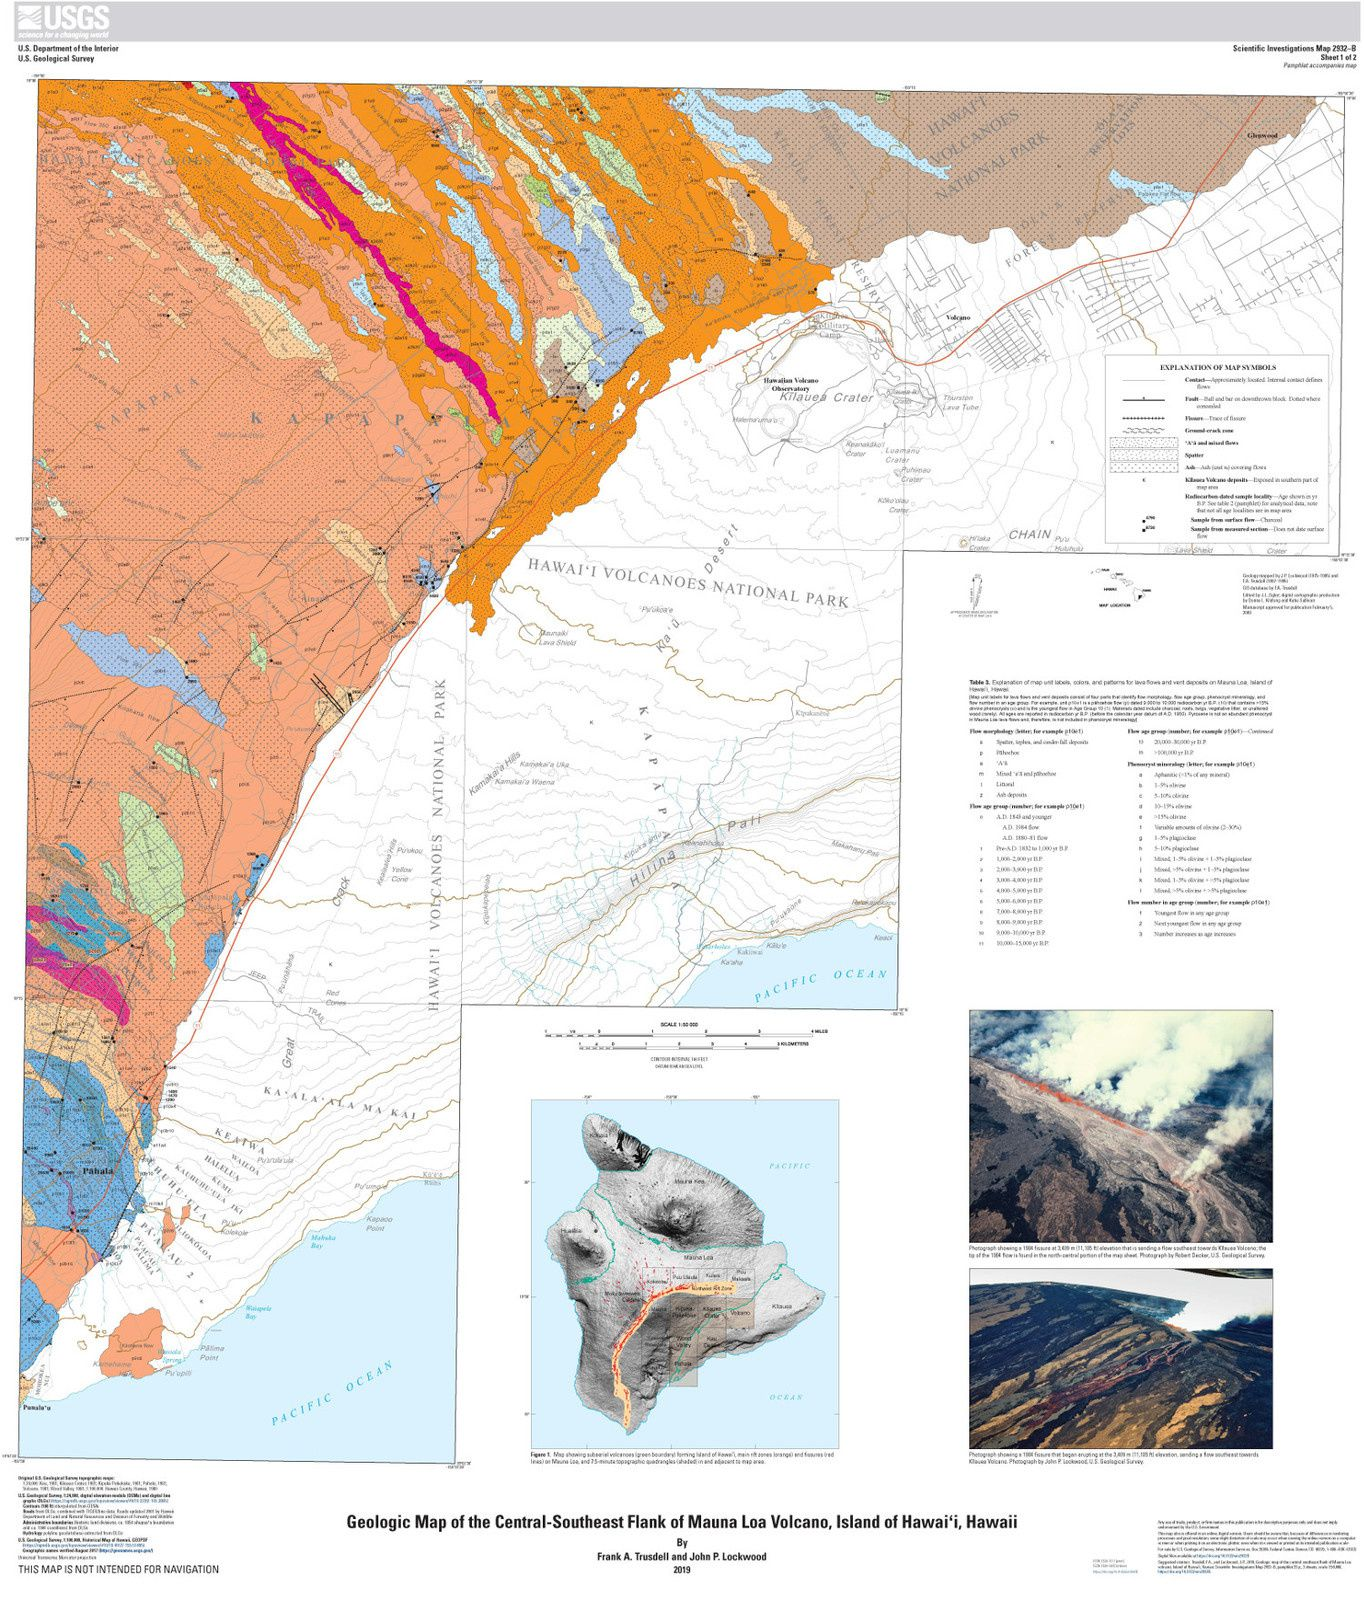 Geologic map of the central-southeast flank of Mauna Loa volcano, Island of Hawai'i, Hawaii: U.S. Geological Survey Scientific Investigations